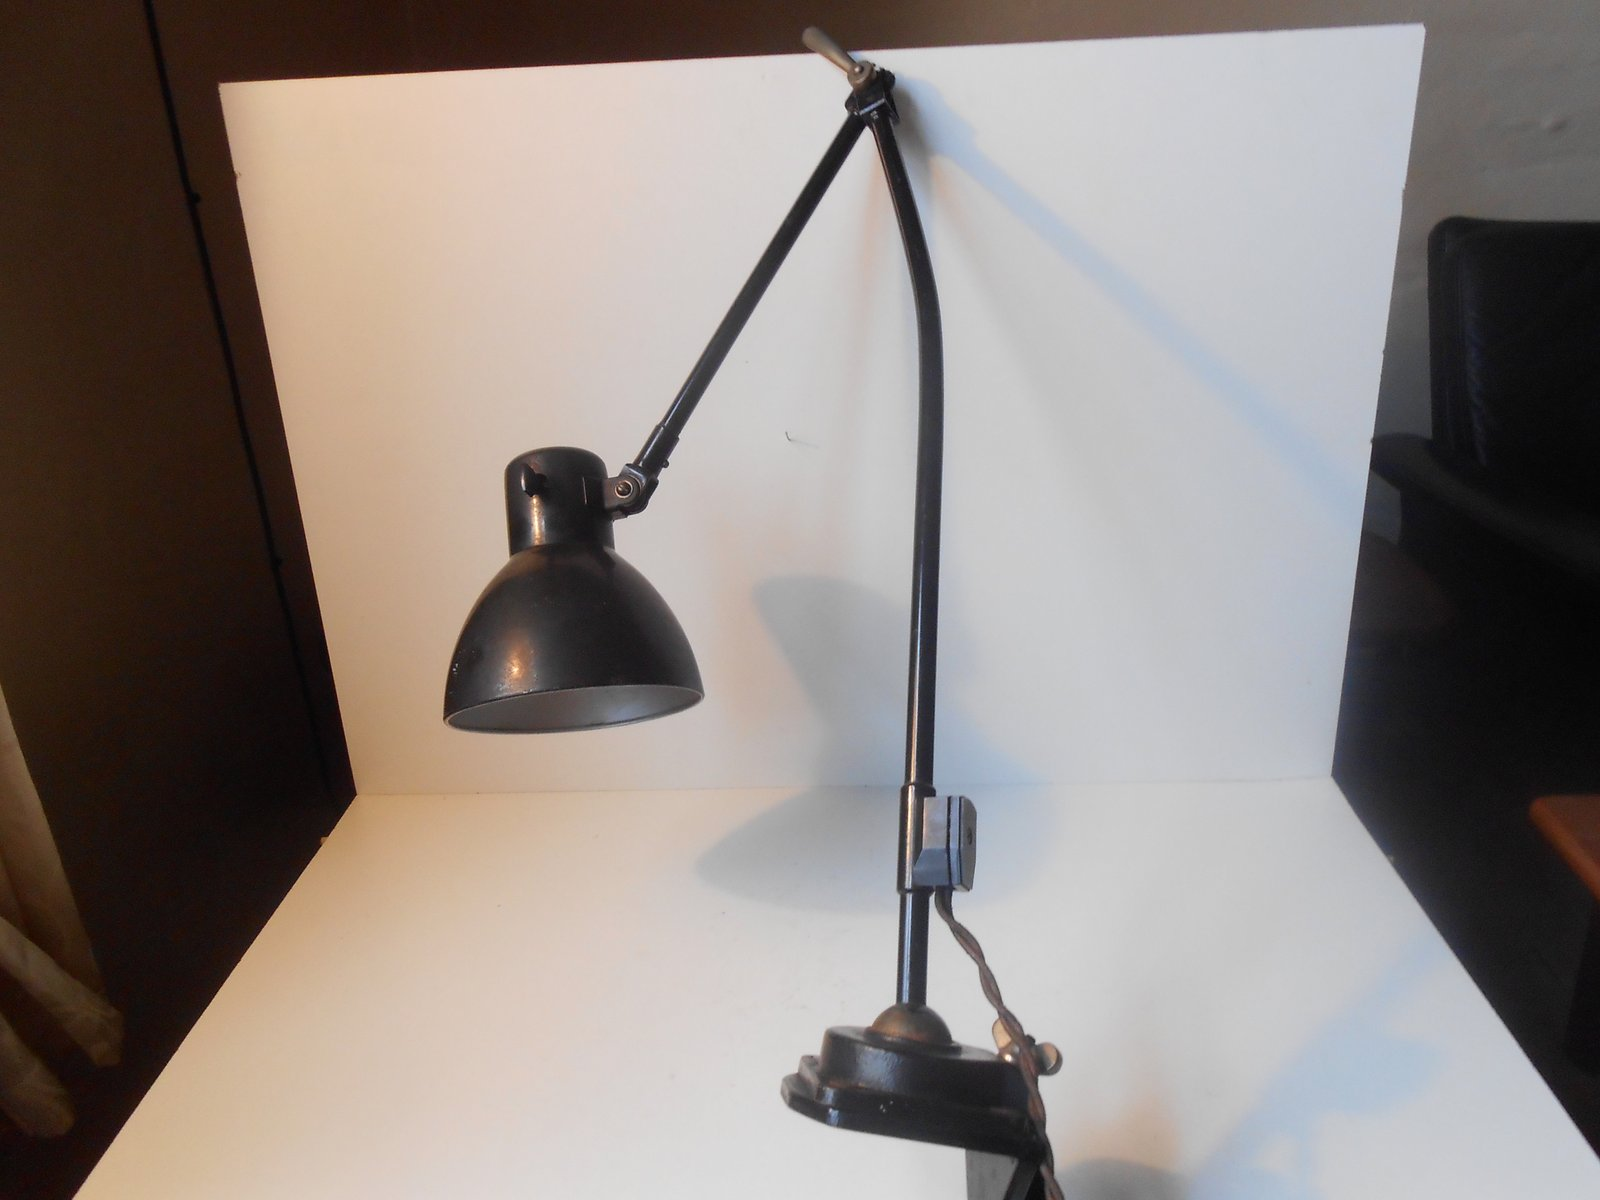 Industrial Desk Lamp by Marianne Brandt for Kandem 1930s for sale